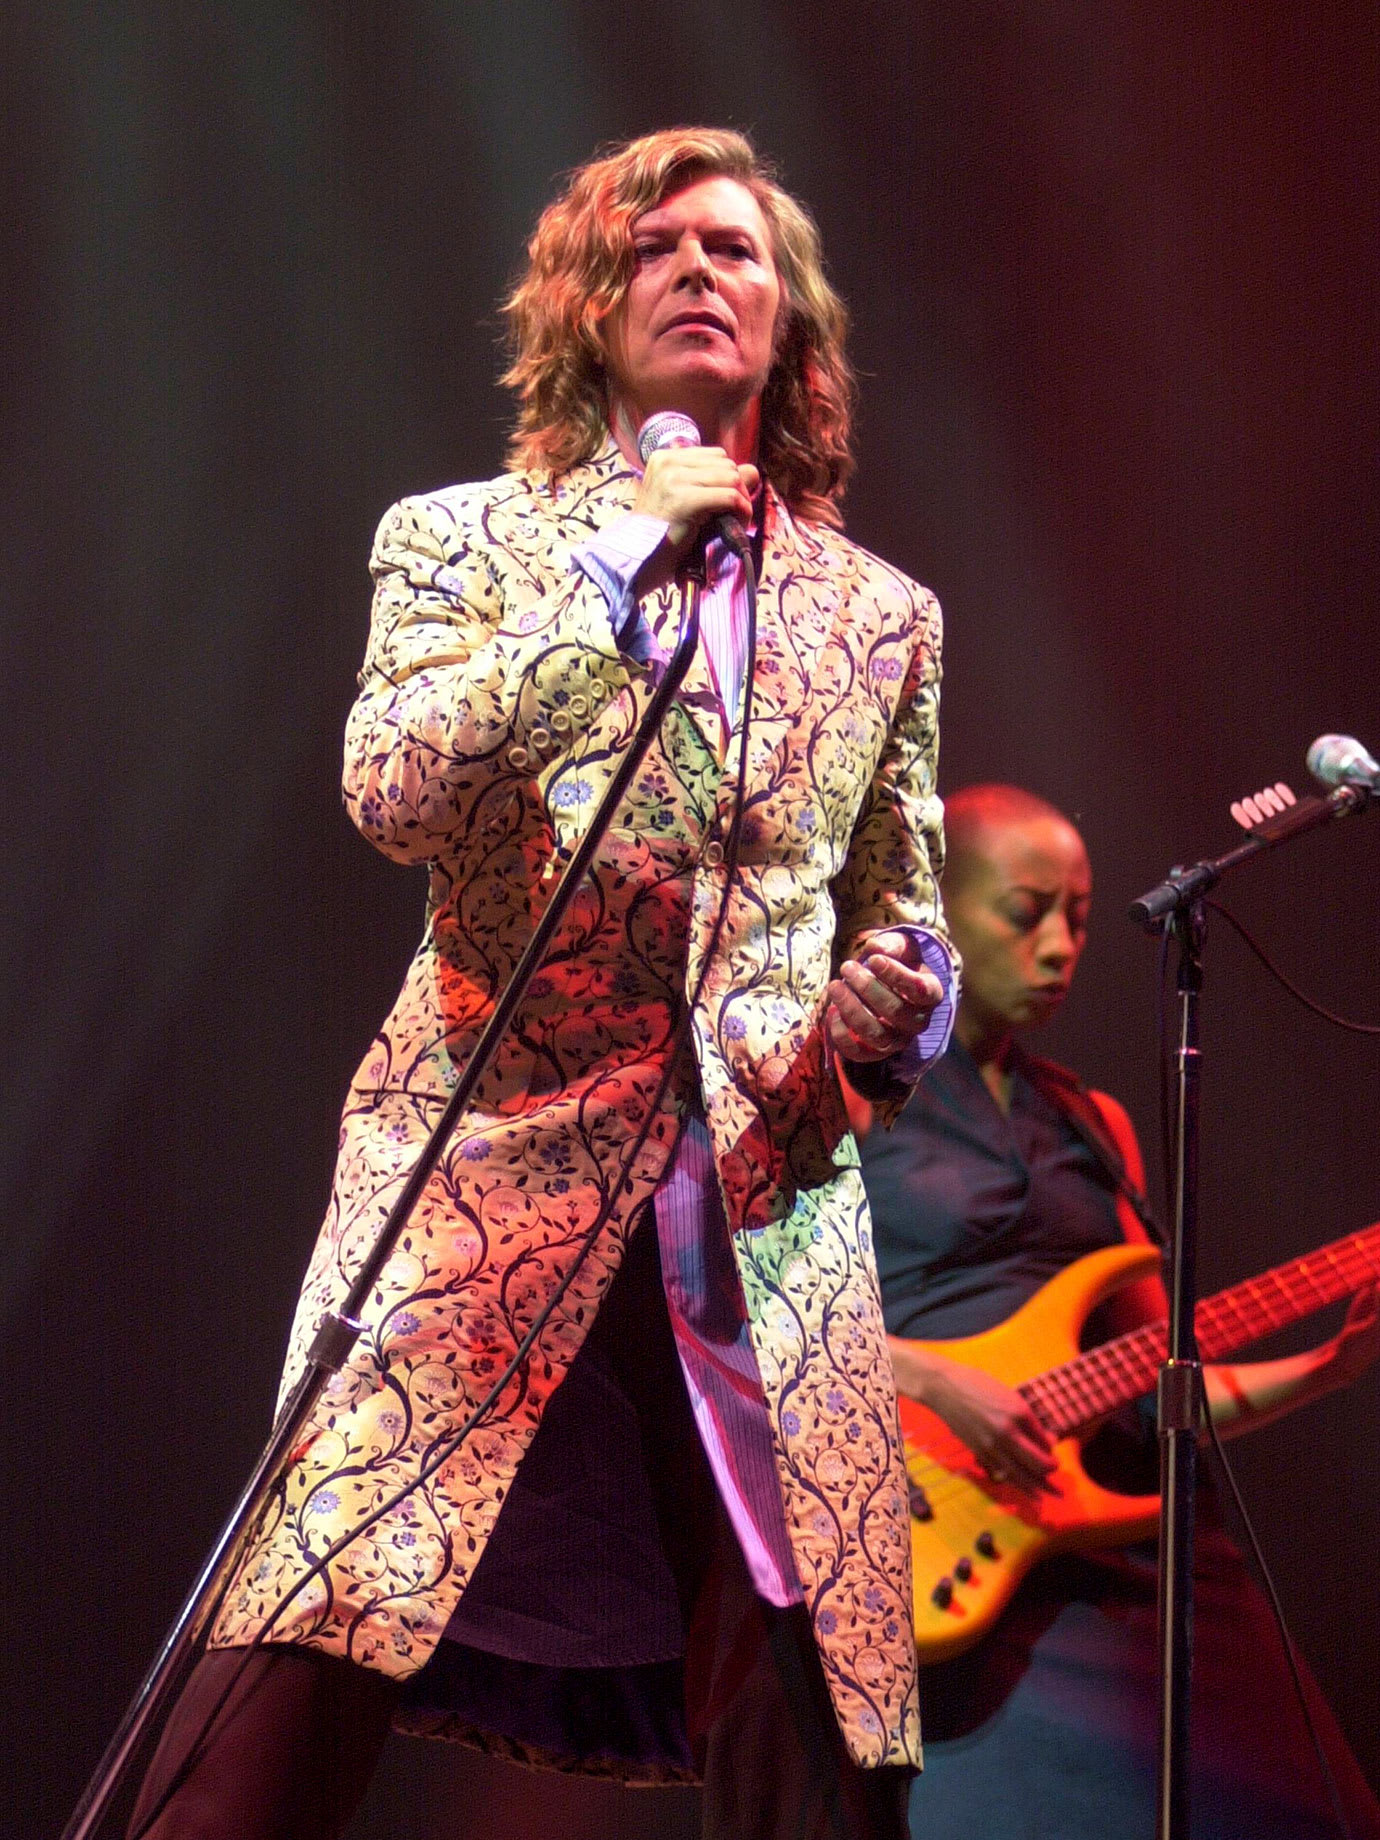 A man singing on a stage in a long coat with long hair.